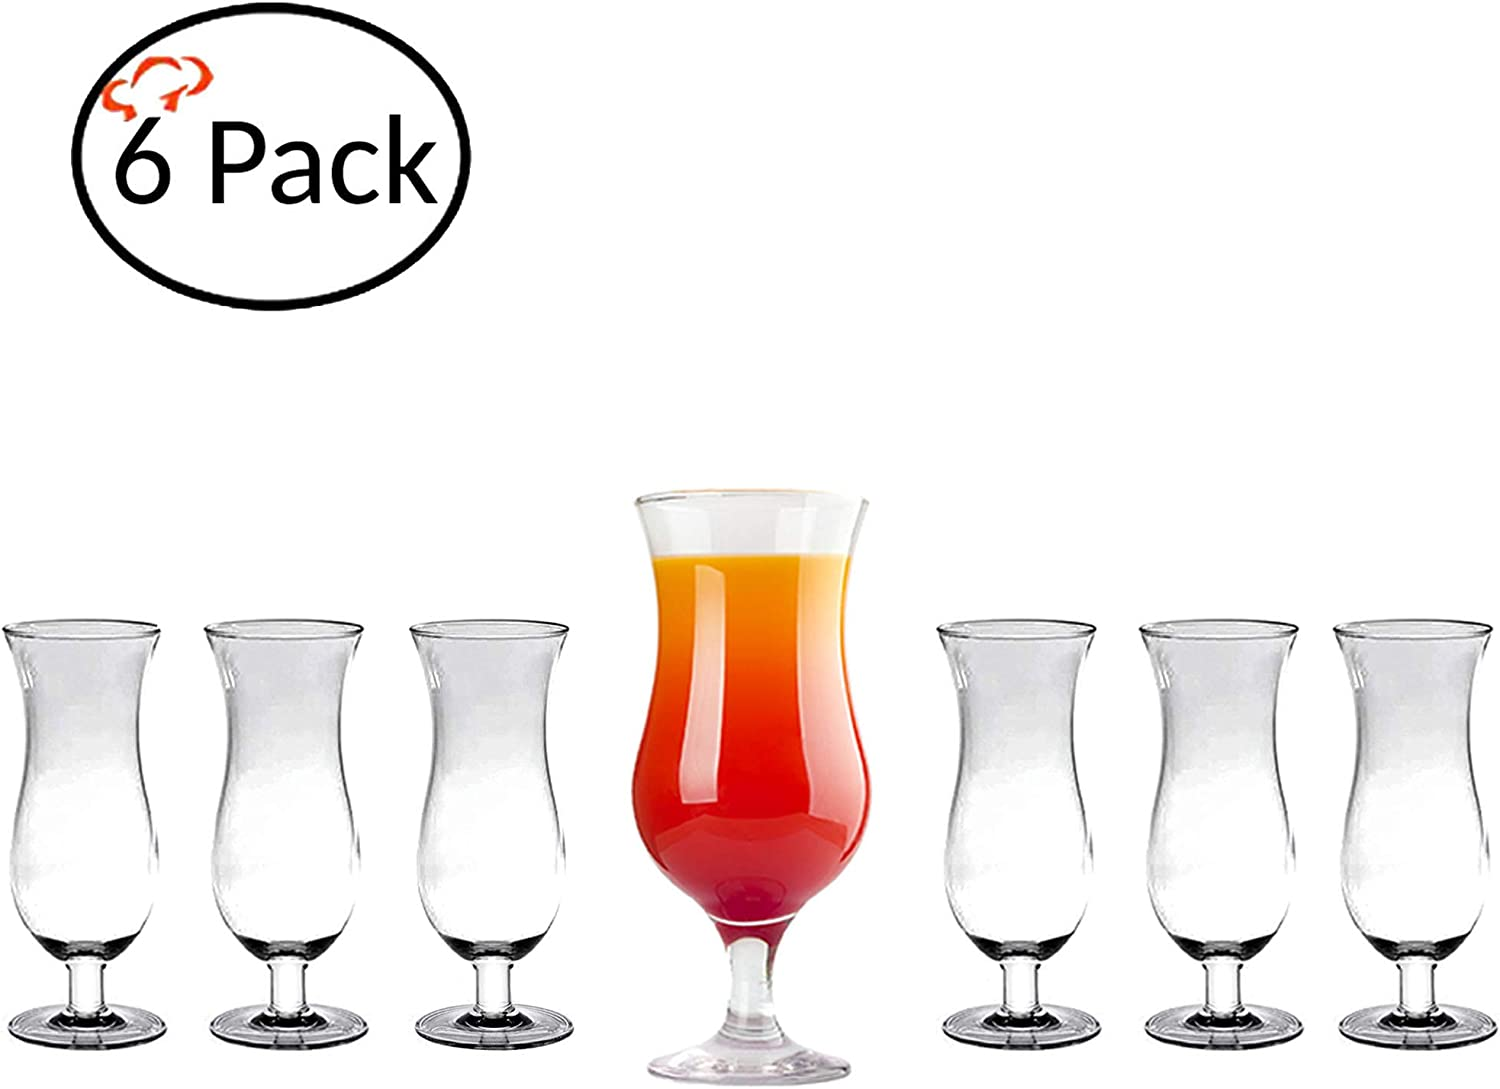 Tiger Chef Polycarbonate Shatter-Proof Reusable Stain Resistant Drinking Glasses Serve Liquor Wine Alcohol Beer Shots Cocktails Margarita Water Heavy Duty Cups Tumblers (6 Pack, Hurricane 16 Oz)